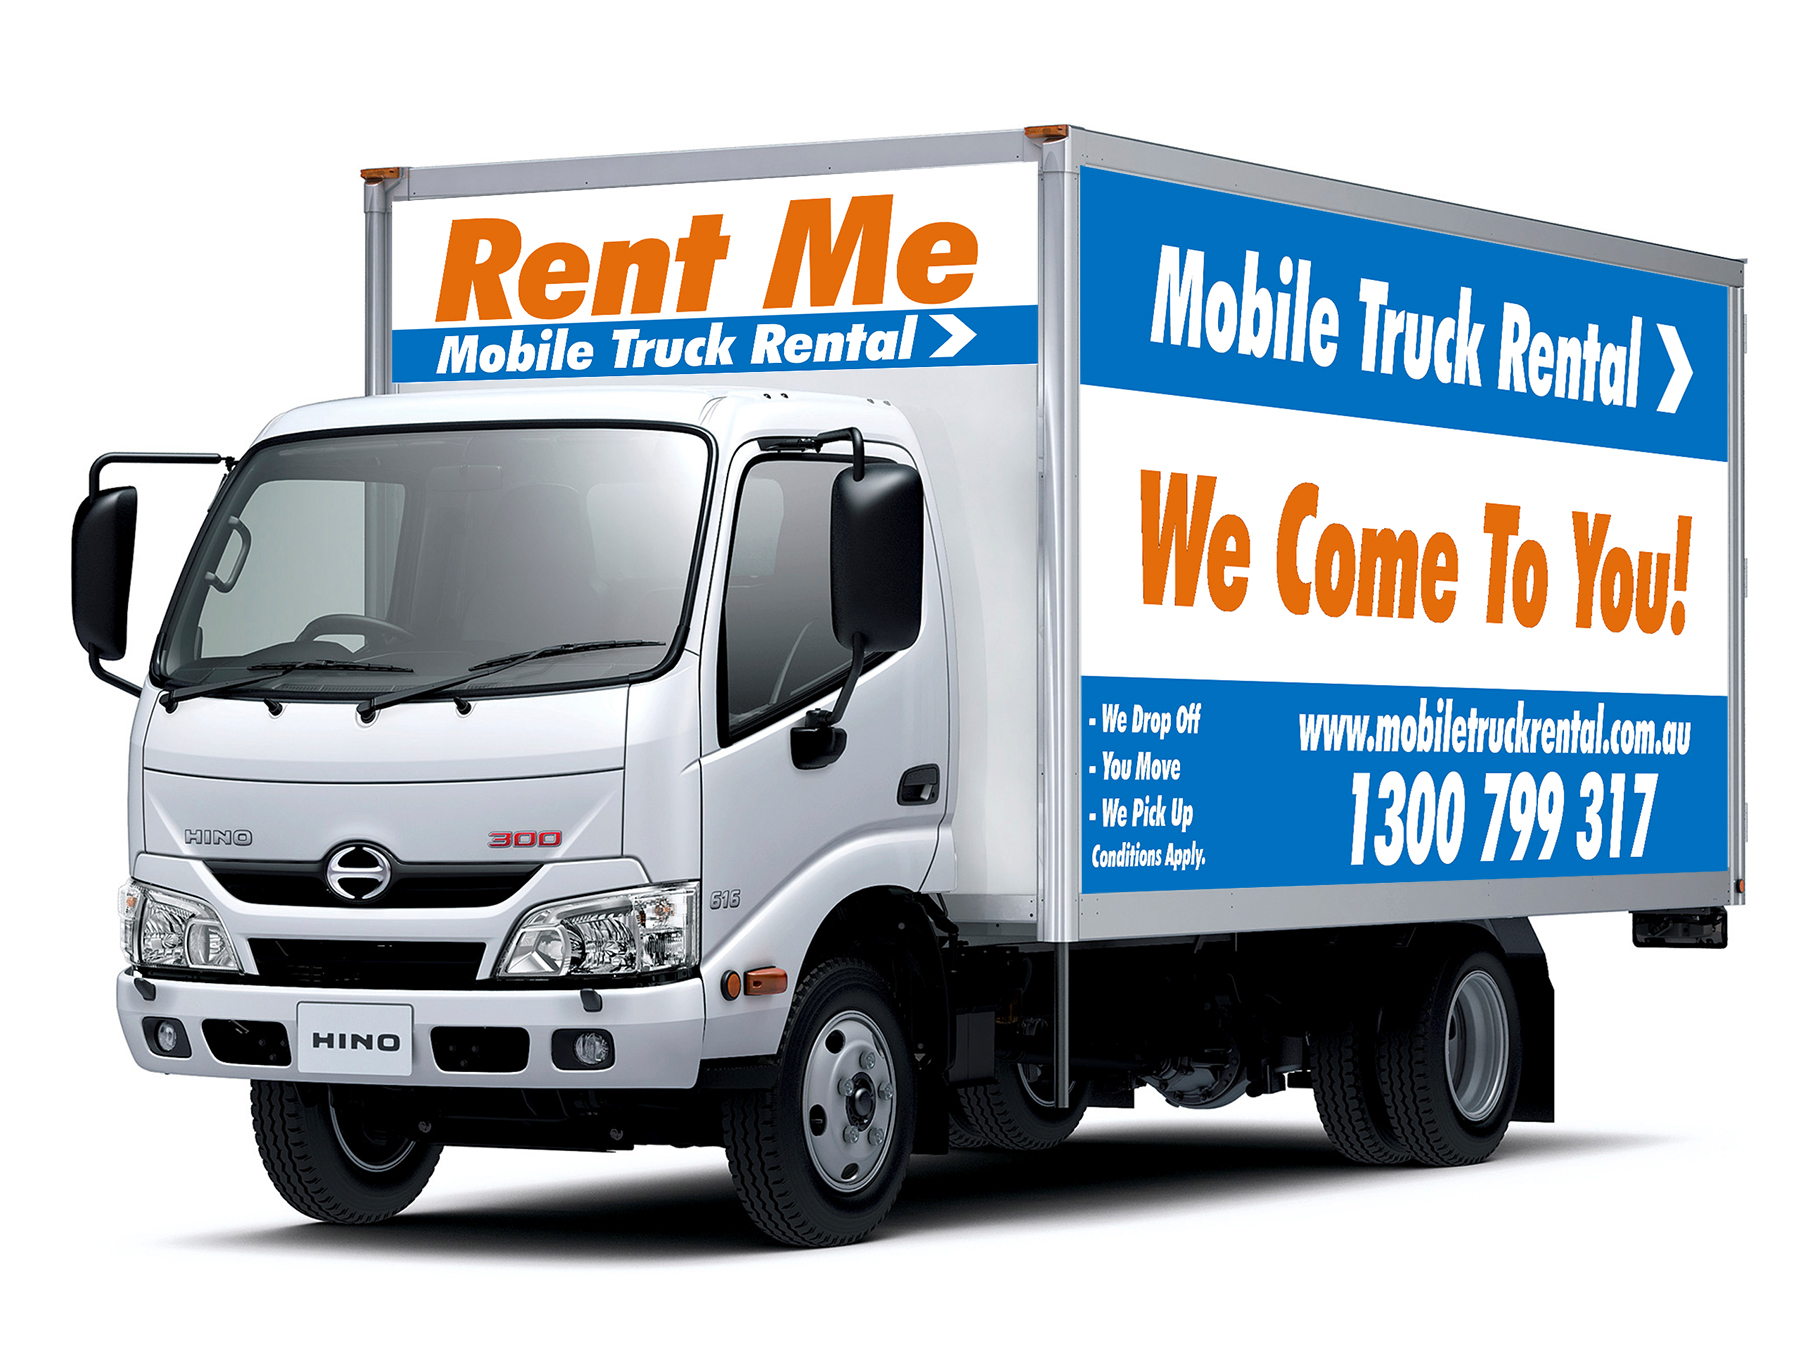 Rental Trucks For Moving >> Rent A Truck - Interstate Truck Hire | Mobile Truck Rental